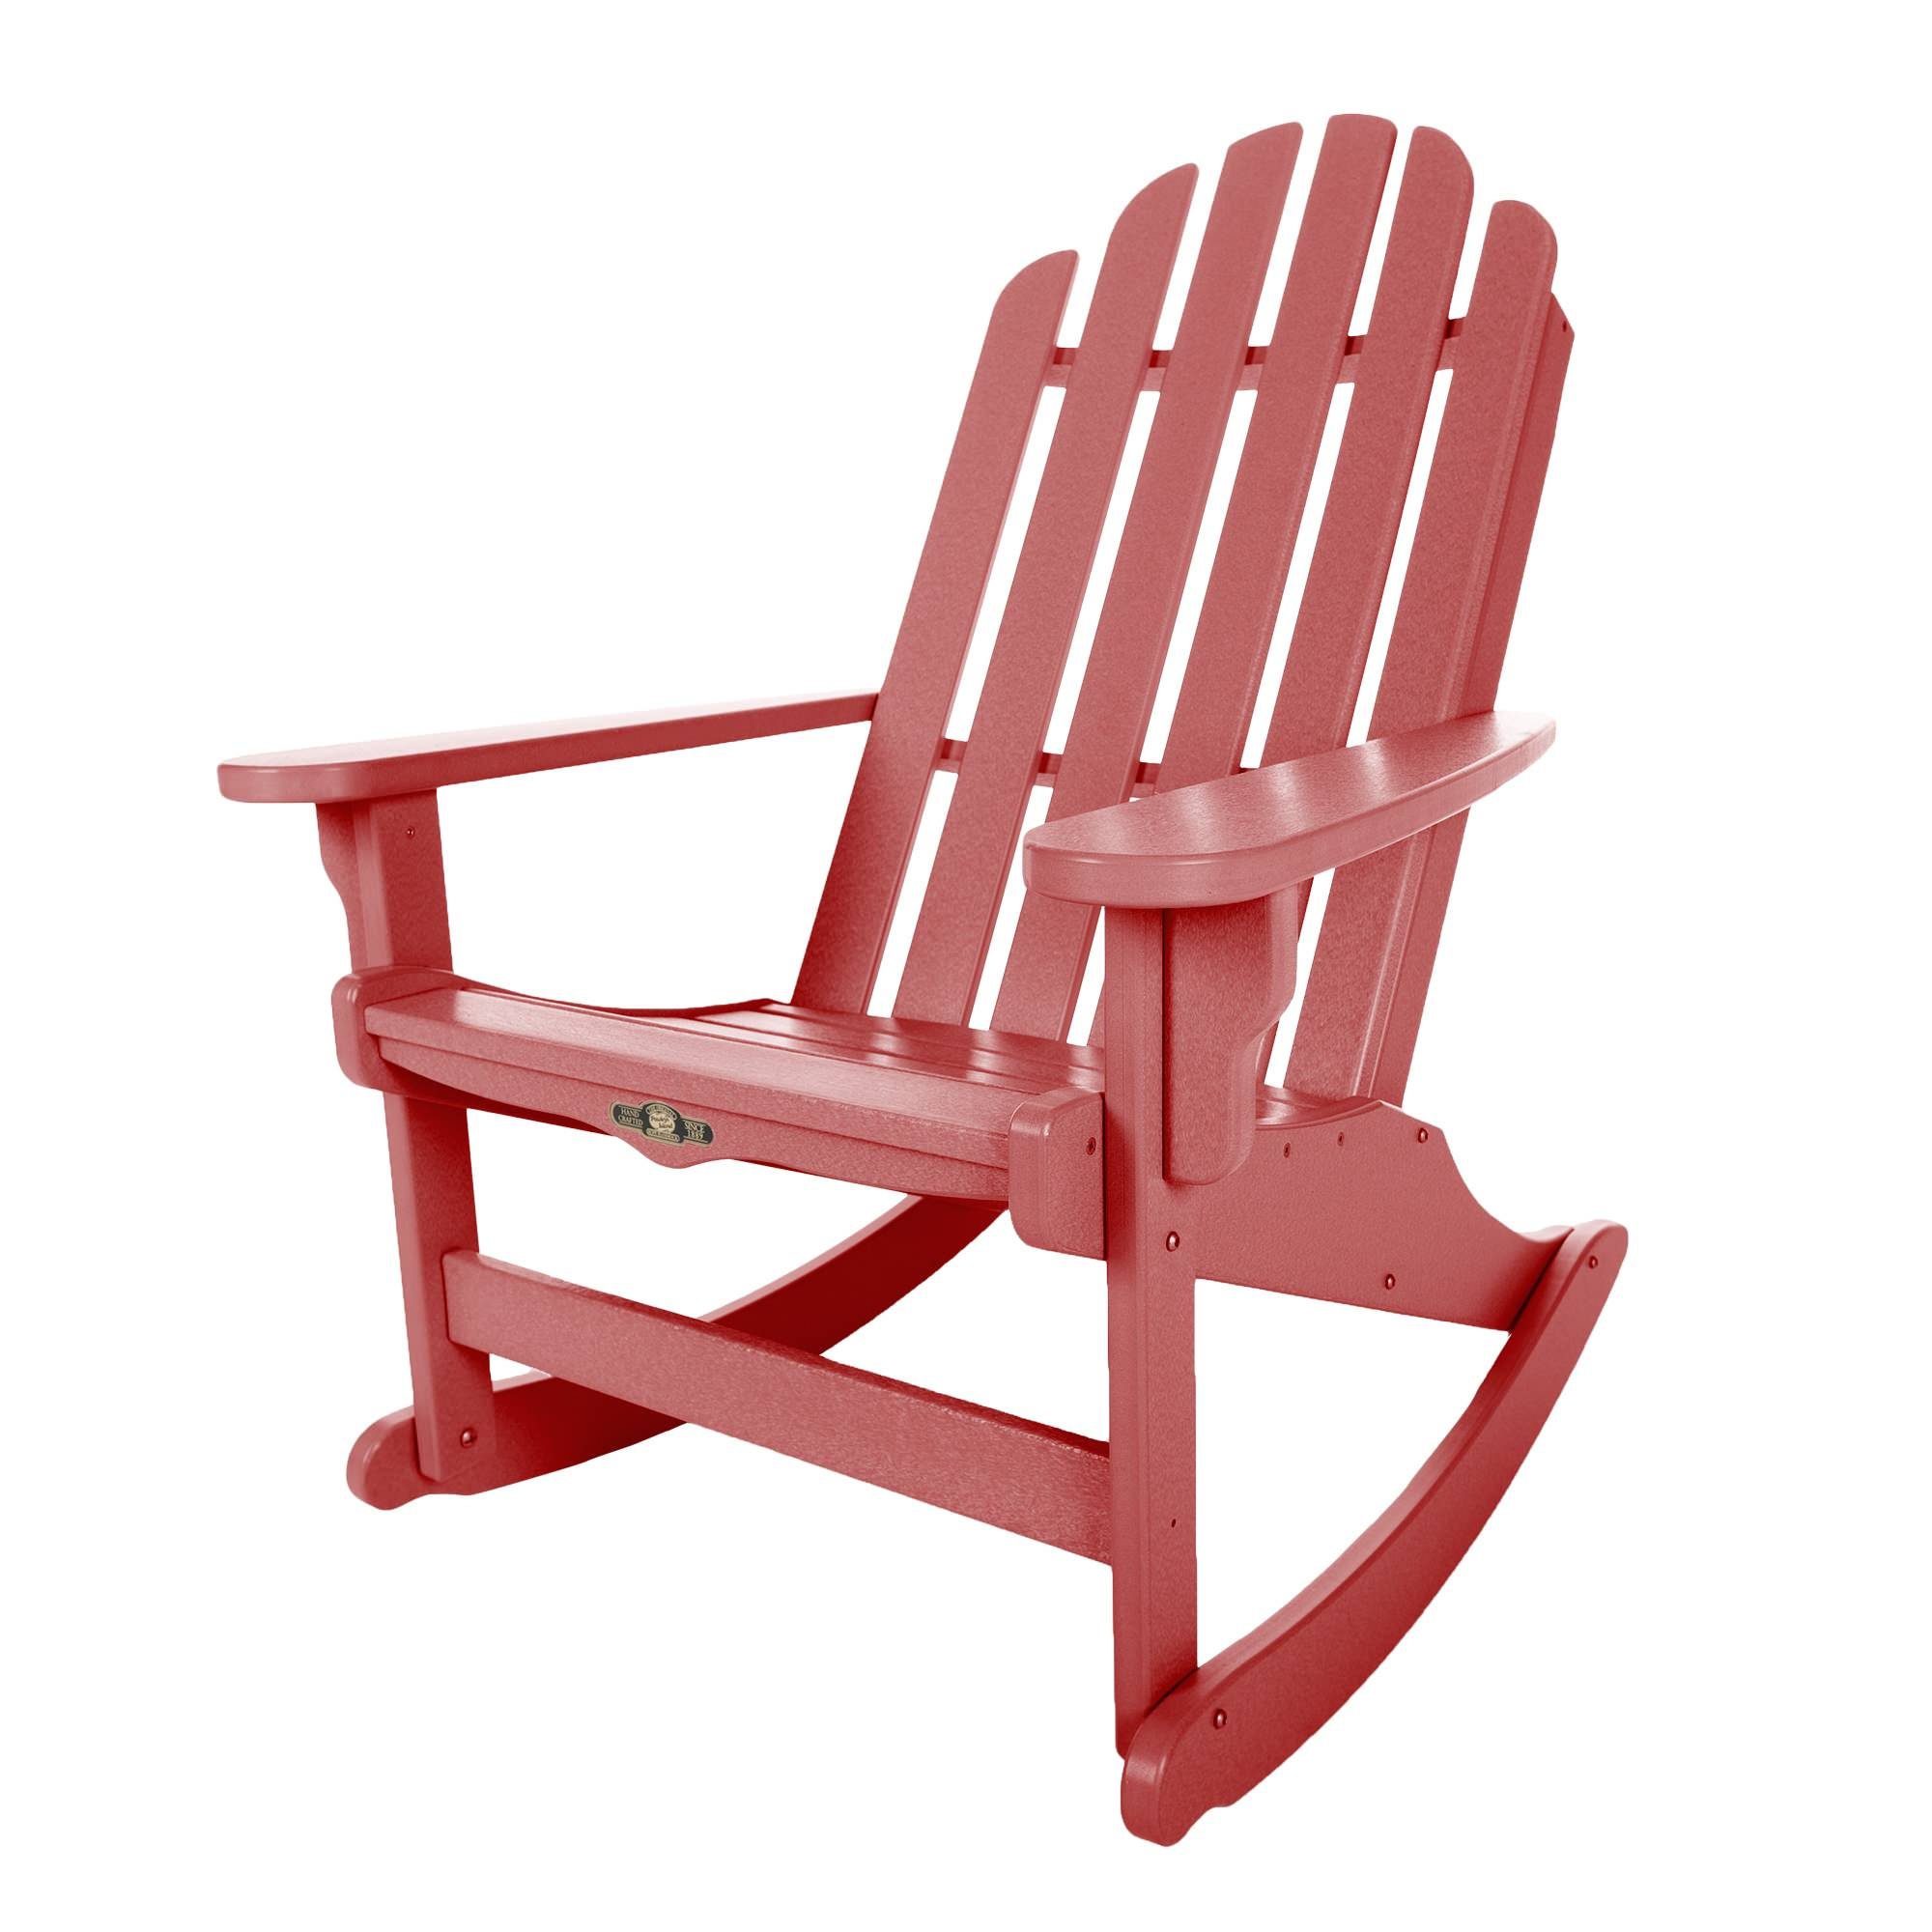 Shop Durawood Essential Adirondack Rockers on Sale